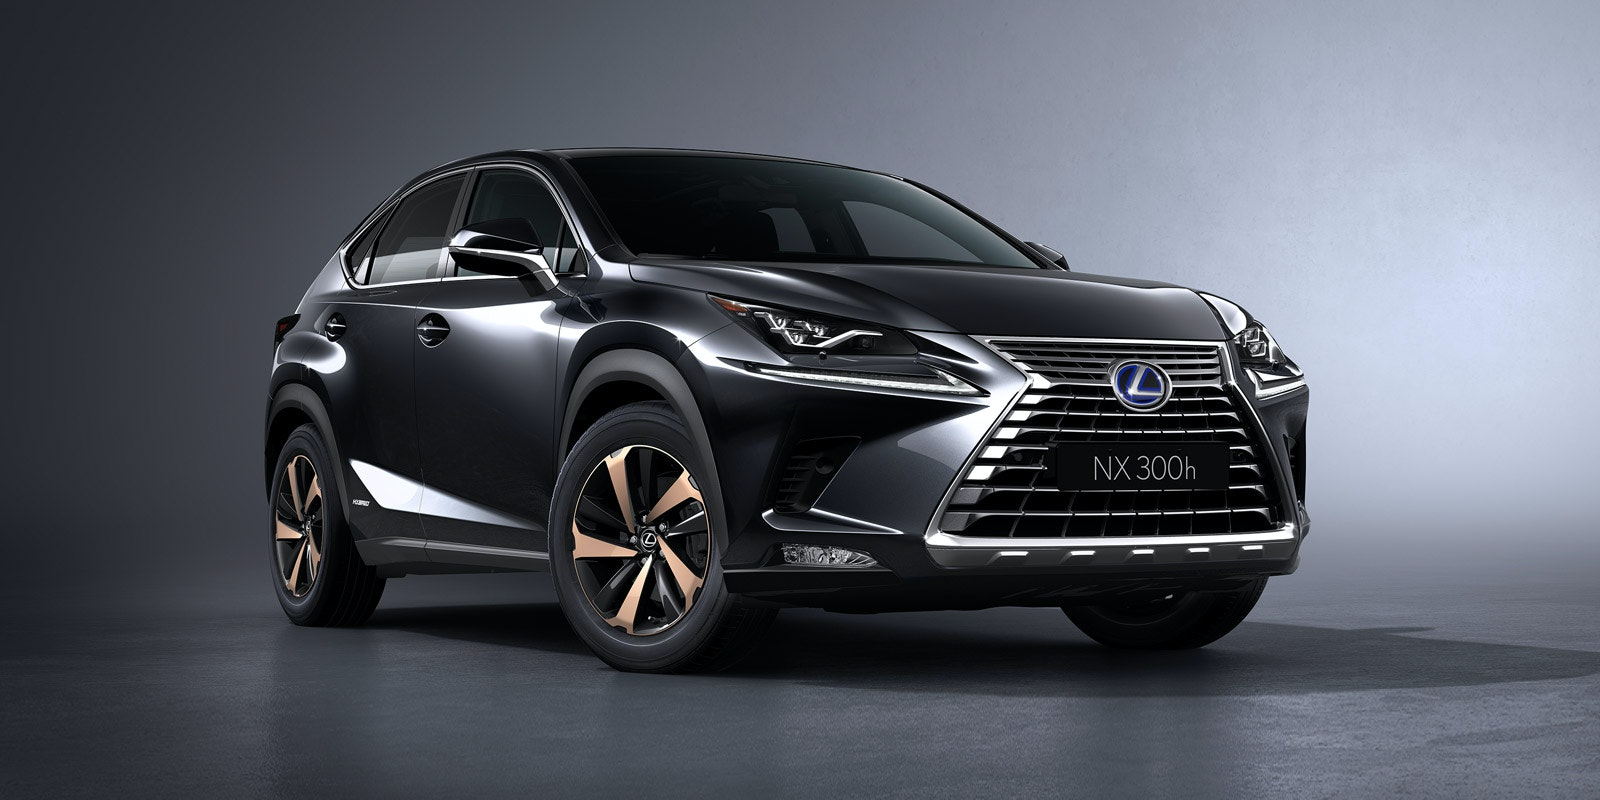 2018 Lexus Nx Facelift Price Specs And Release Date Carwow